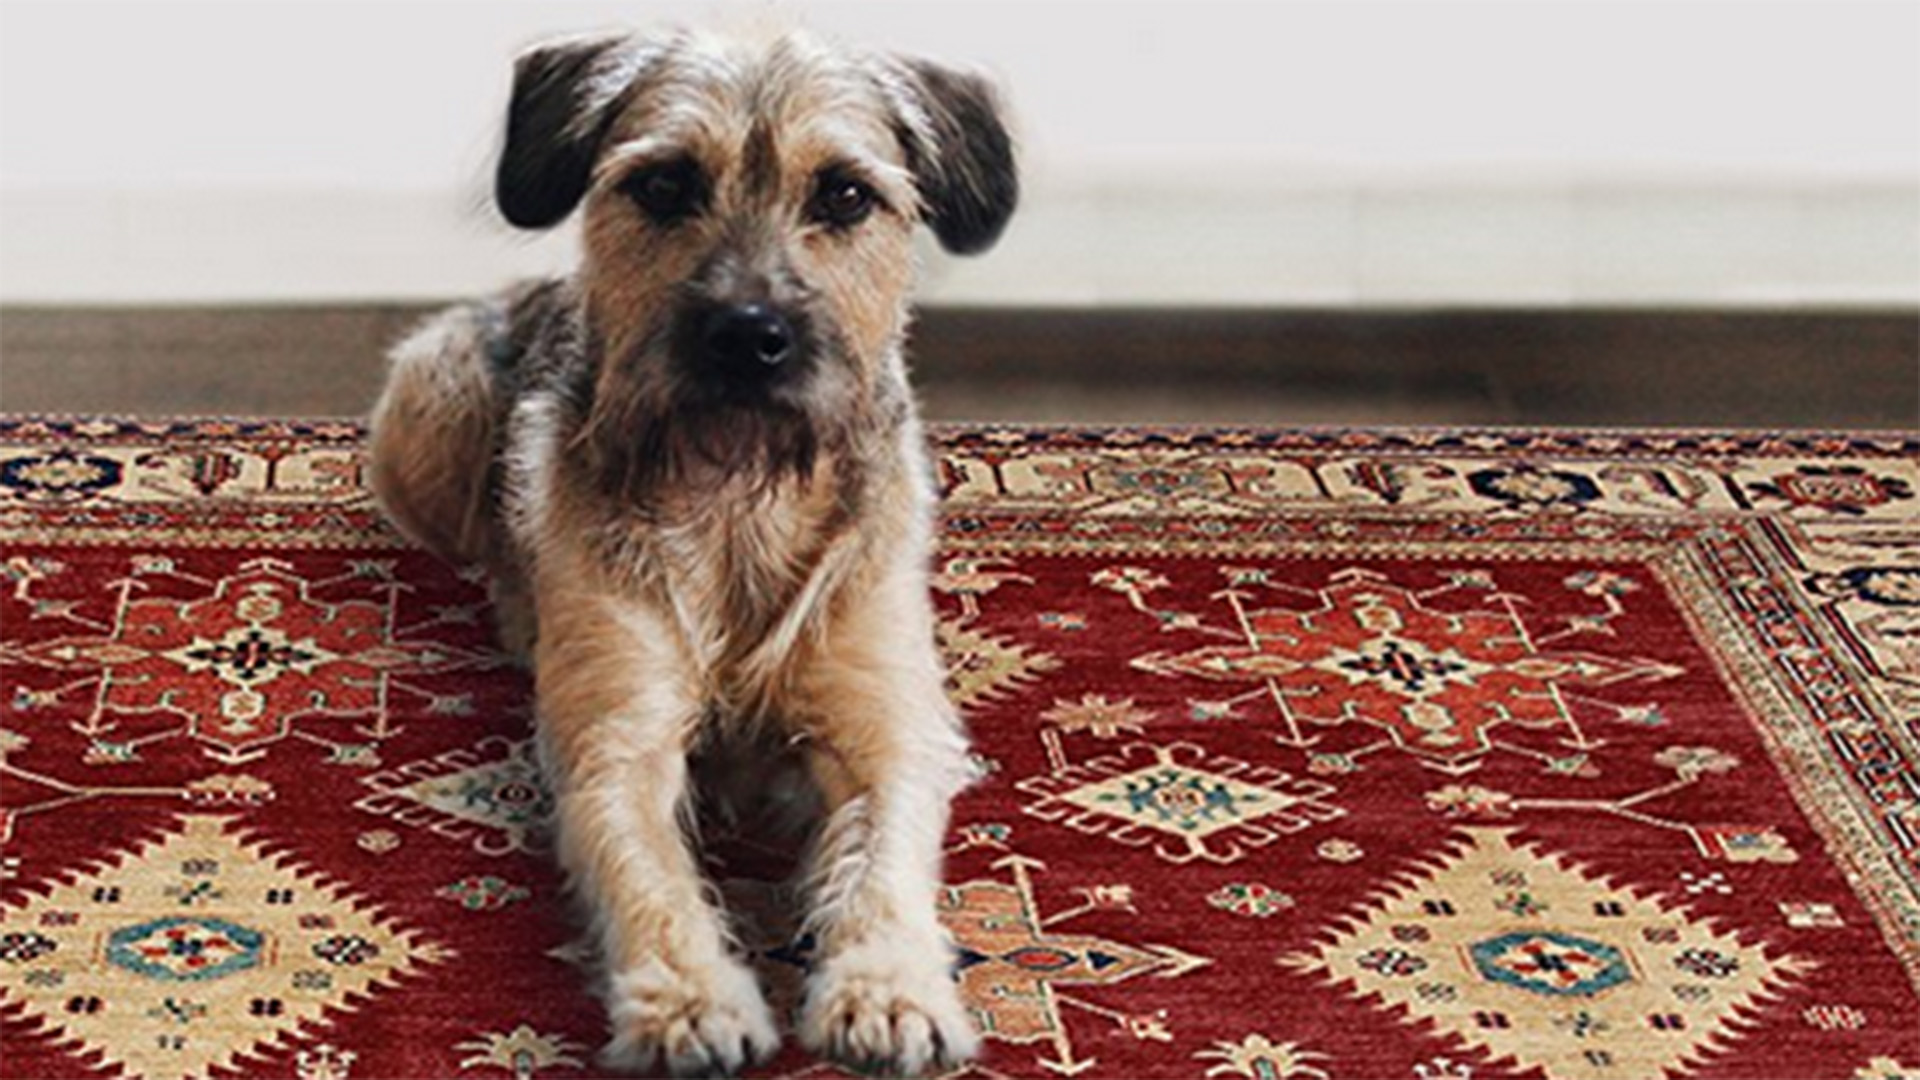 size ideas livingoomugs place living room rugs rug to for category unusual unique best forea with areaug cool quality delectable dogs material post